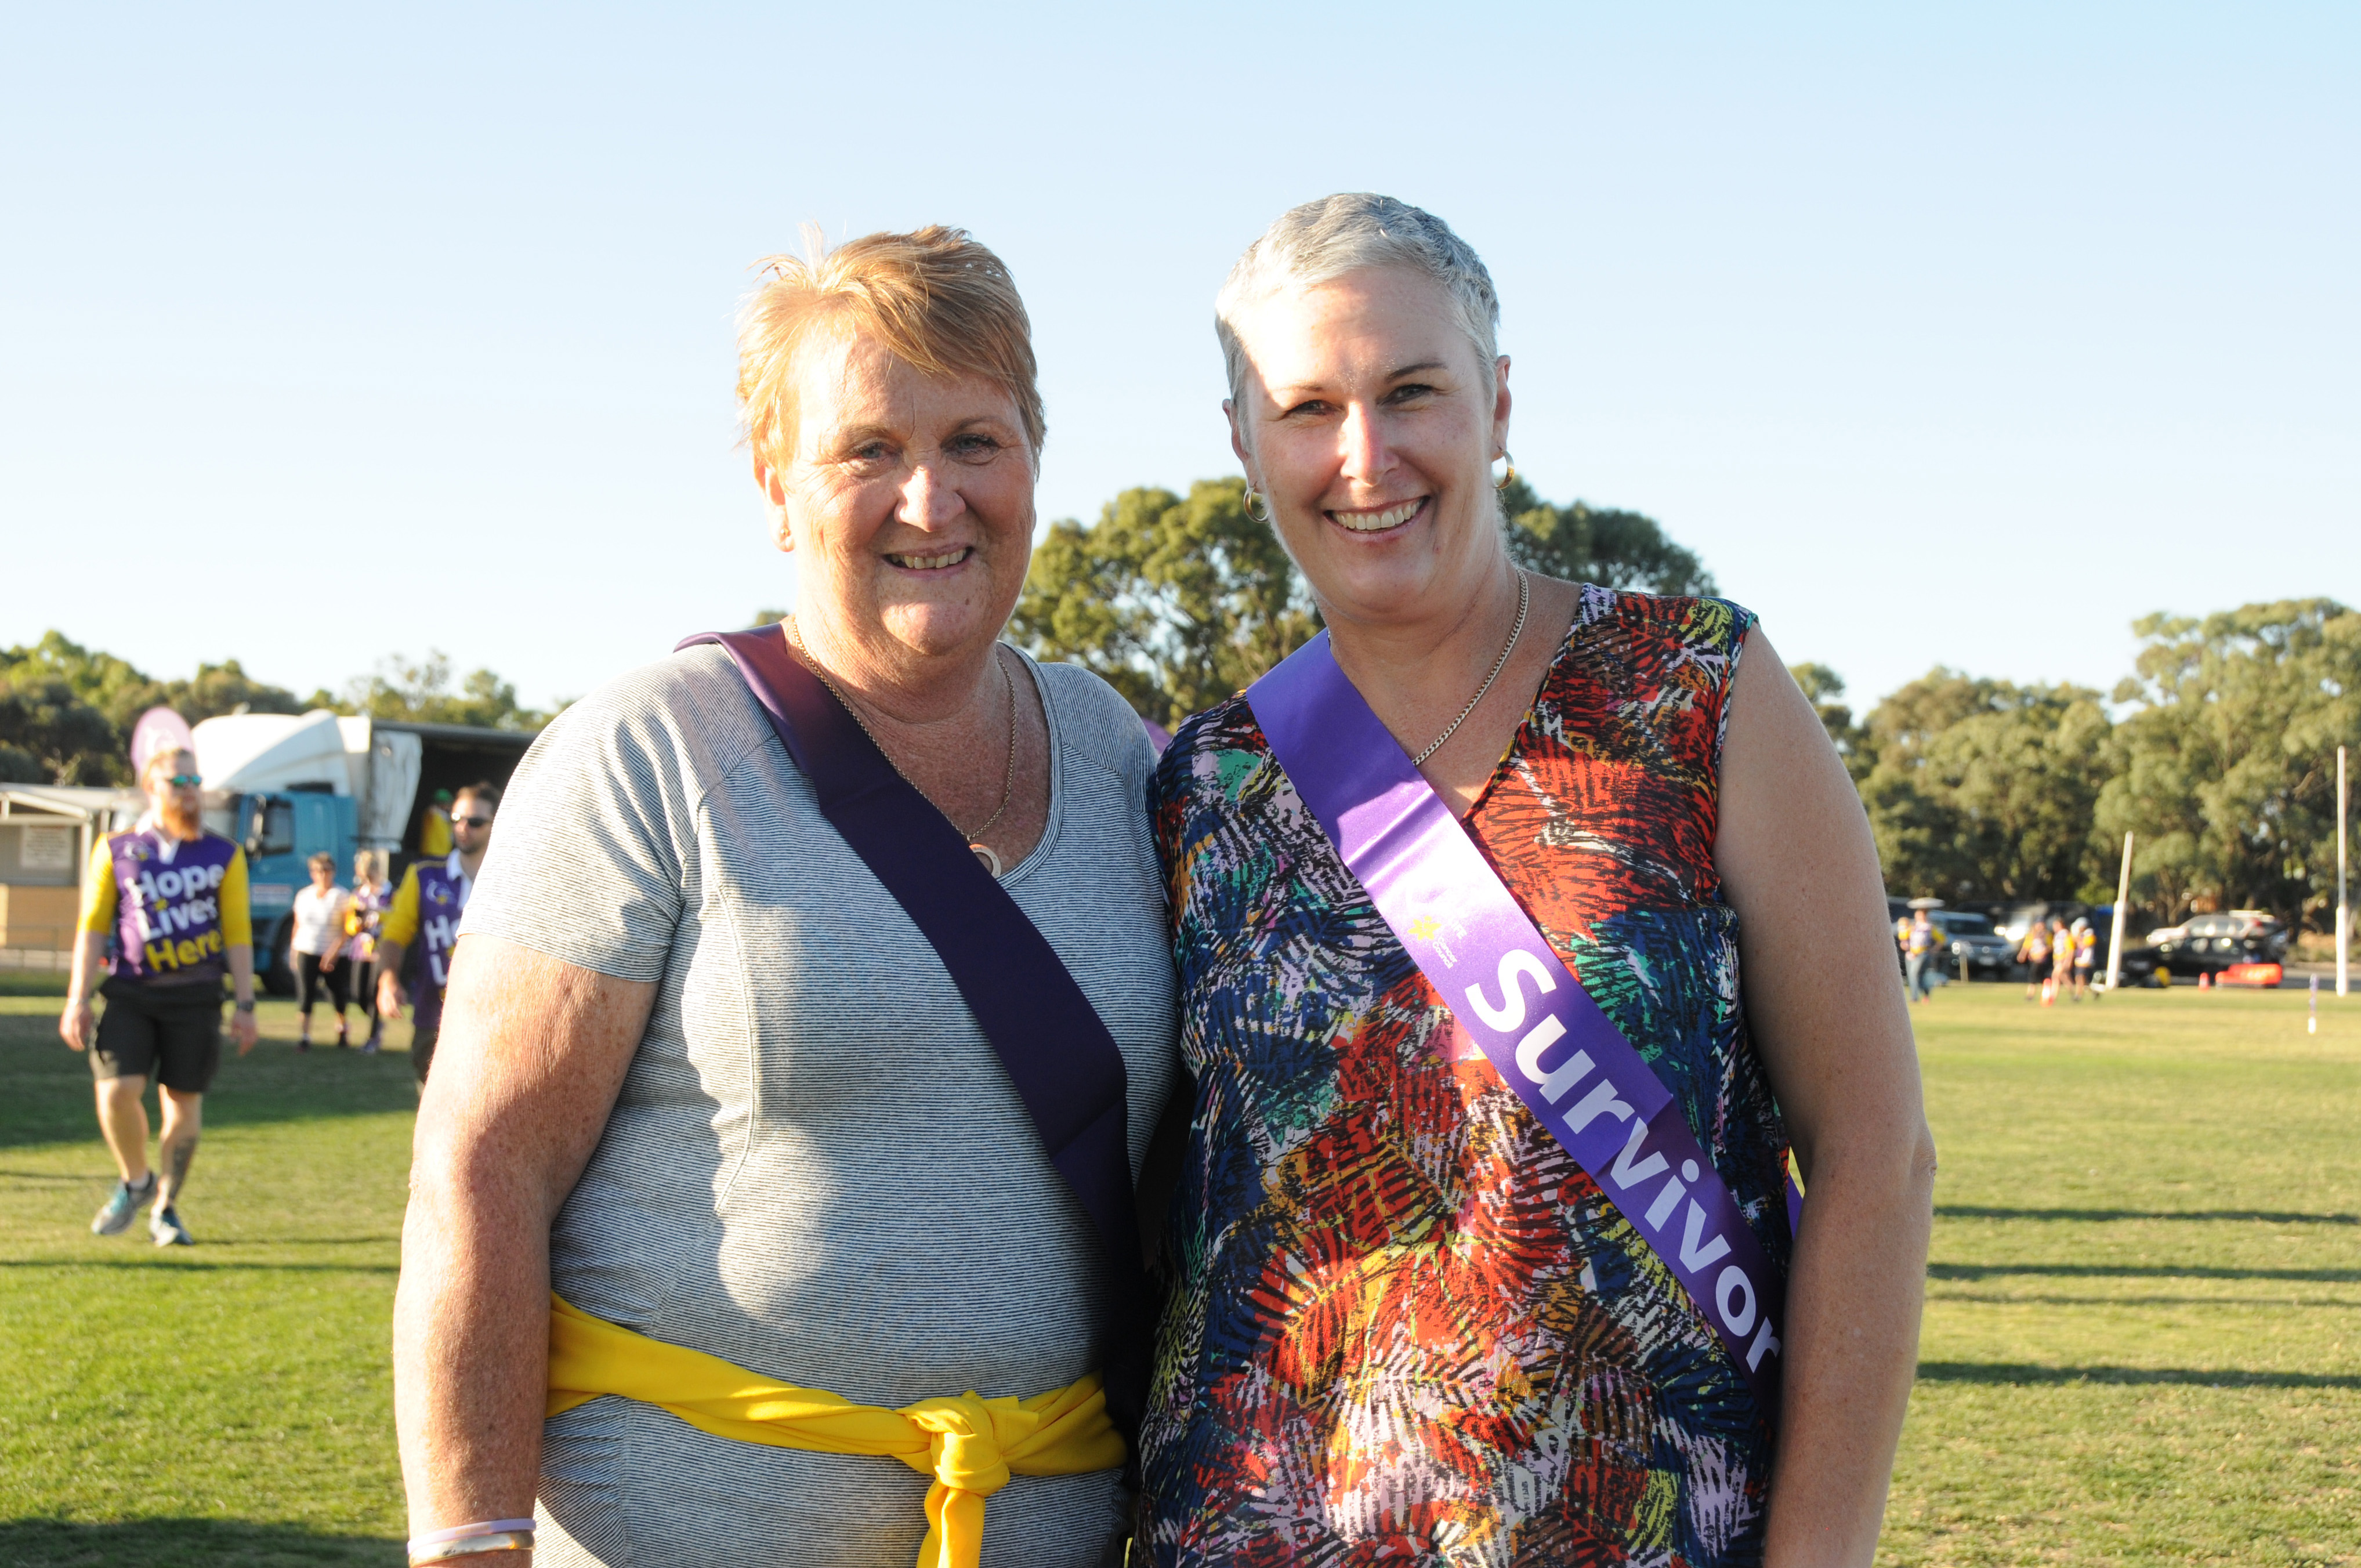 Image - Horsham and District Relay for Life, 170317. Sharon Dumesny and Joy Williams of Horsham.